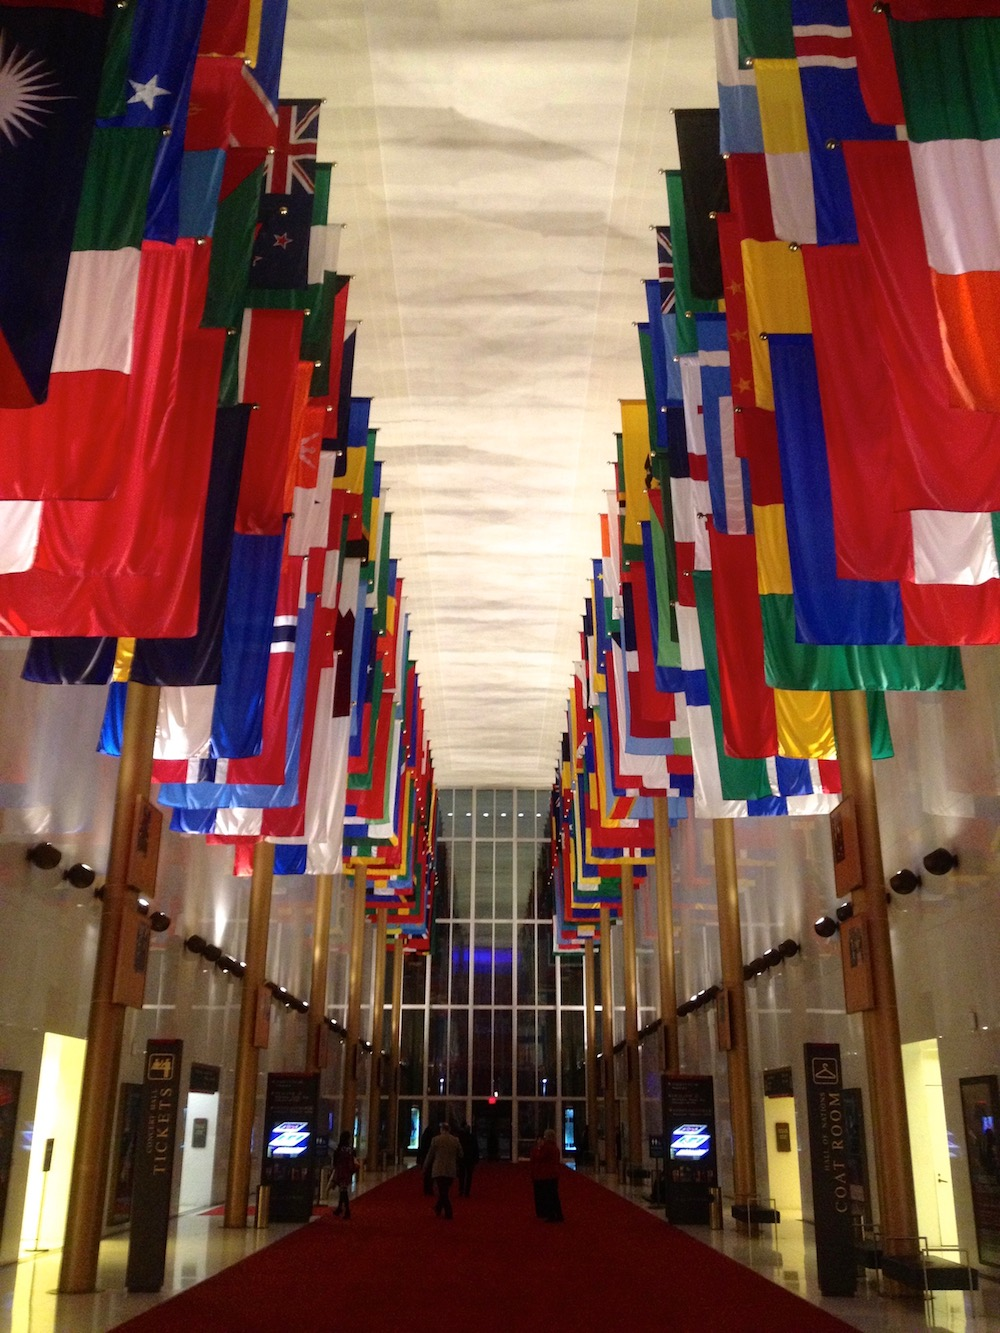 E Pluribus Unum. Out of many, one. The flags of the many places we've come from -- the world's vibrant nations -- hang majestically at the Kennedy Center in Washington, DC.